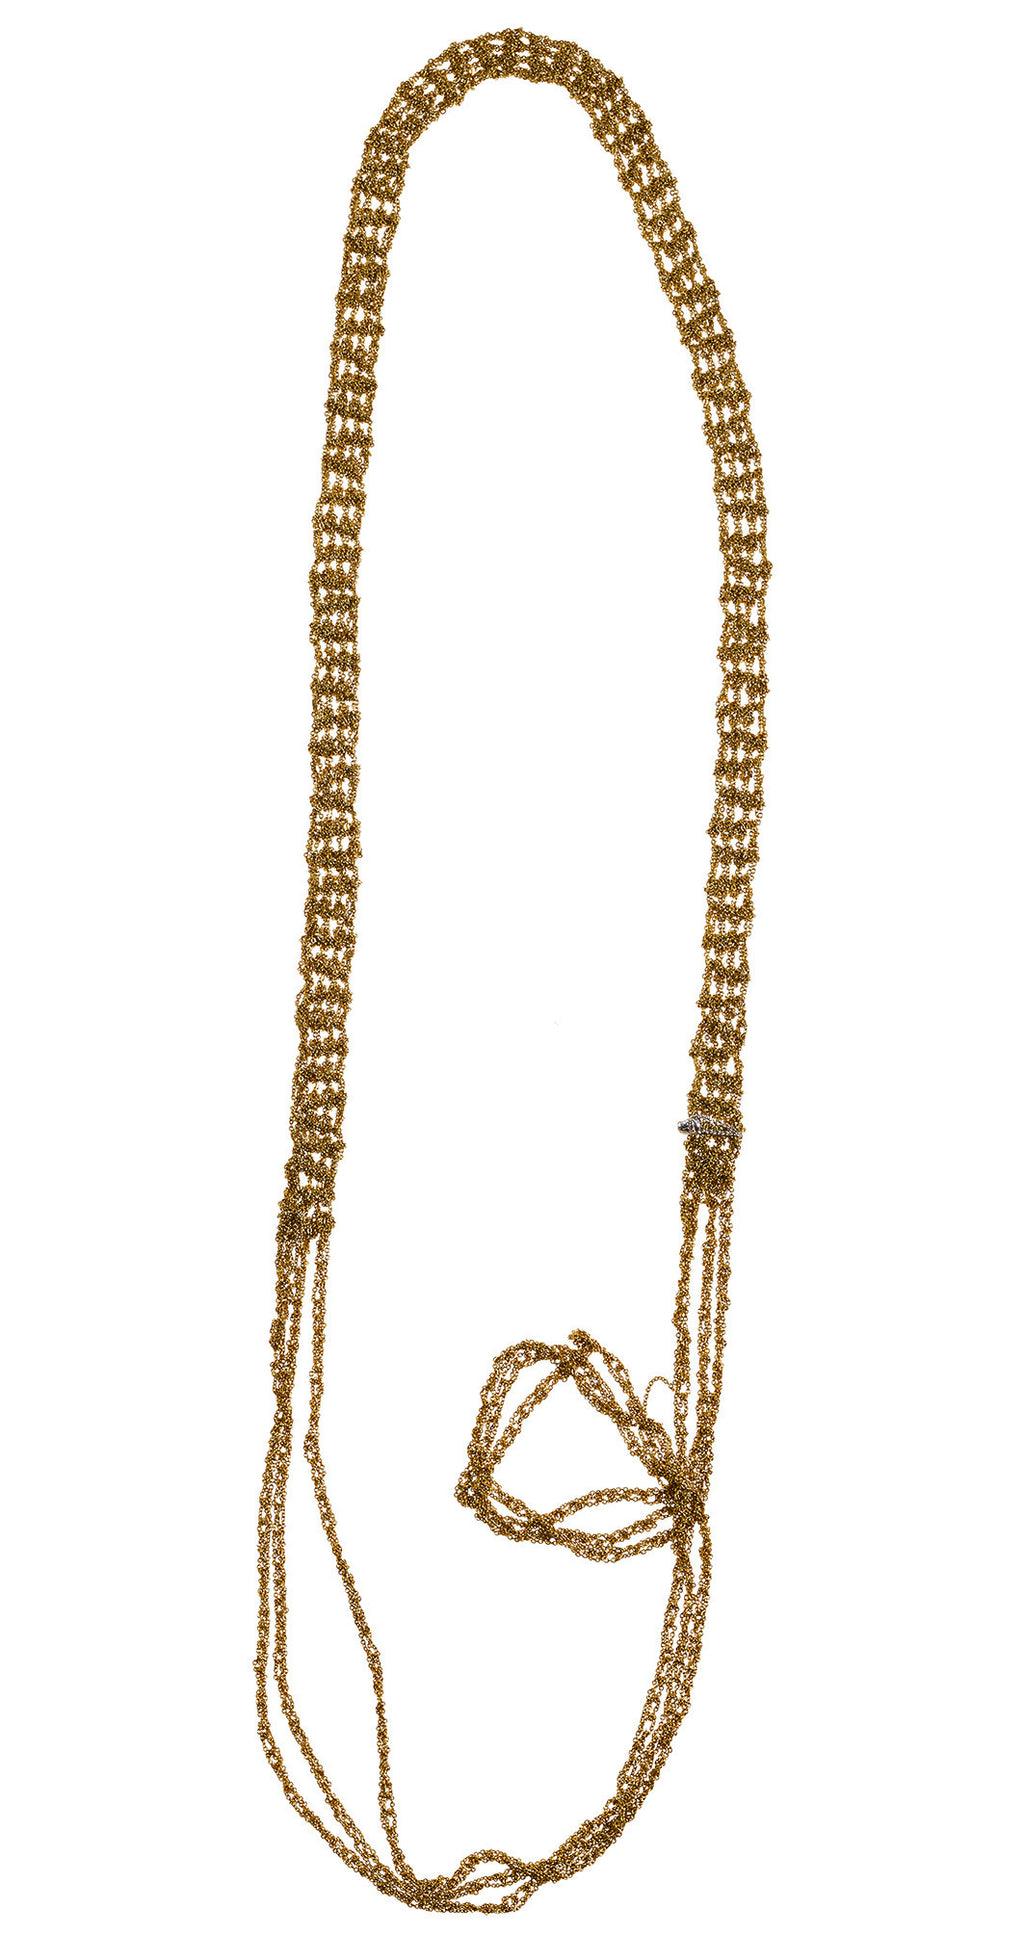 The Slim Necklace in Gold